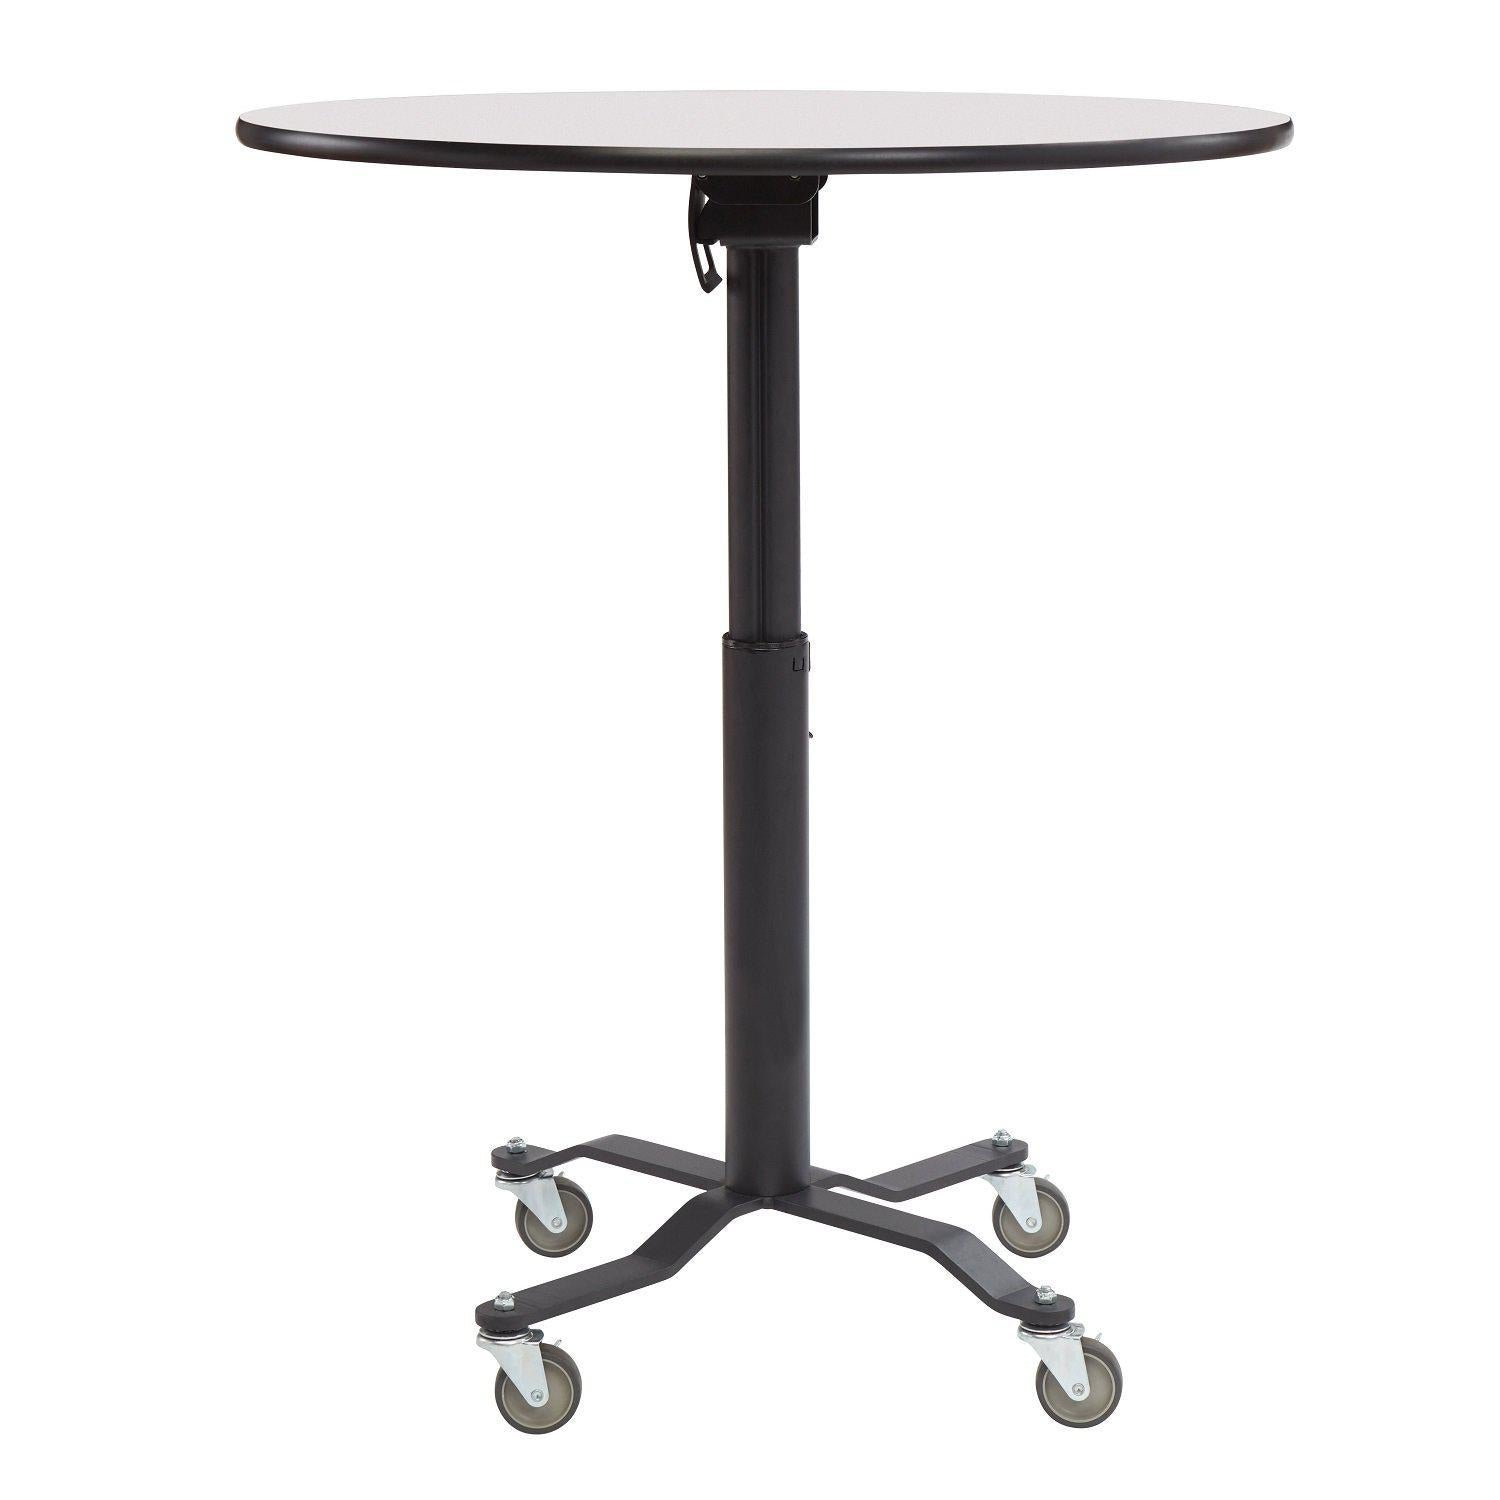 Premium Plus Café Table, Whiteboard Top, Textured Black Frame